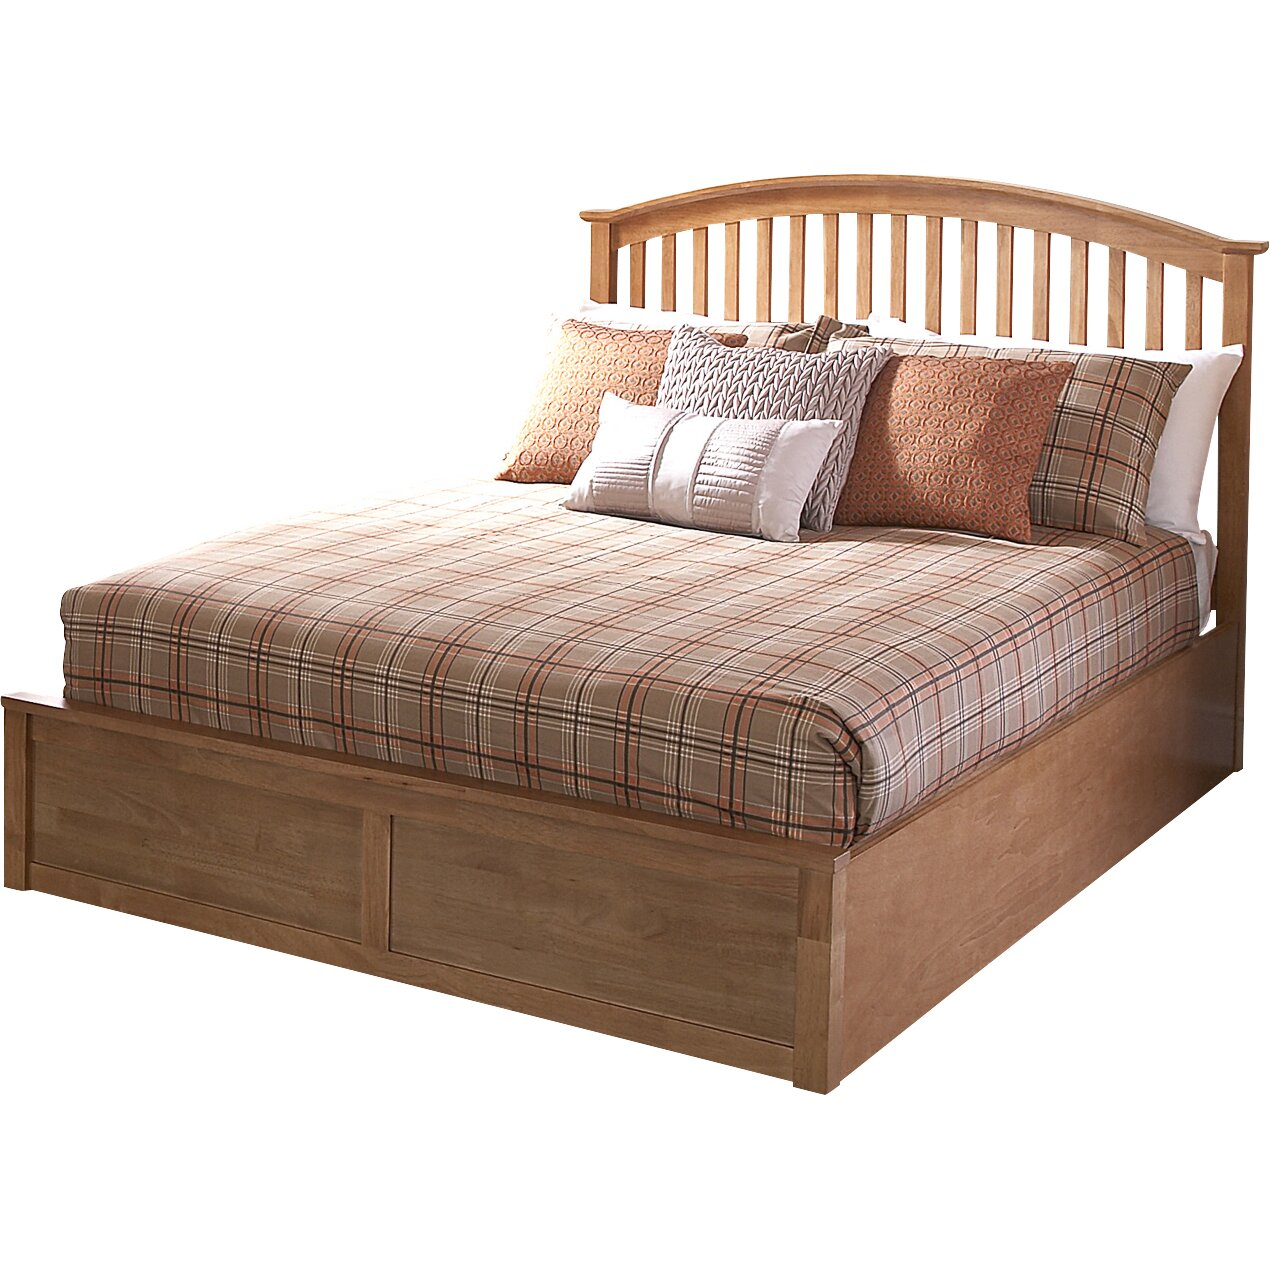 Home loft concept madrid ottoman bed reviews for Concept beds